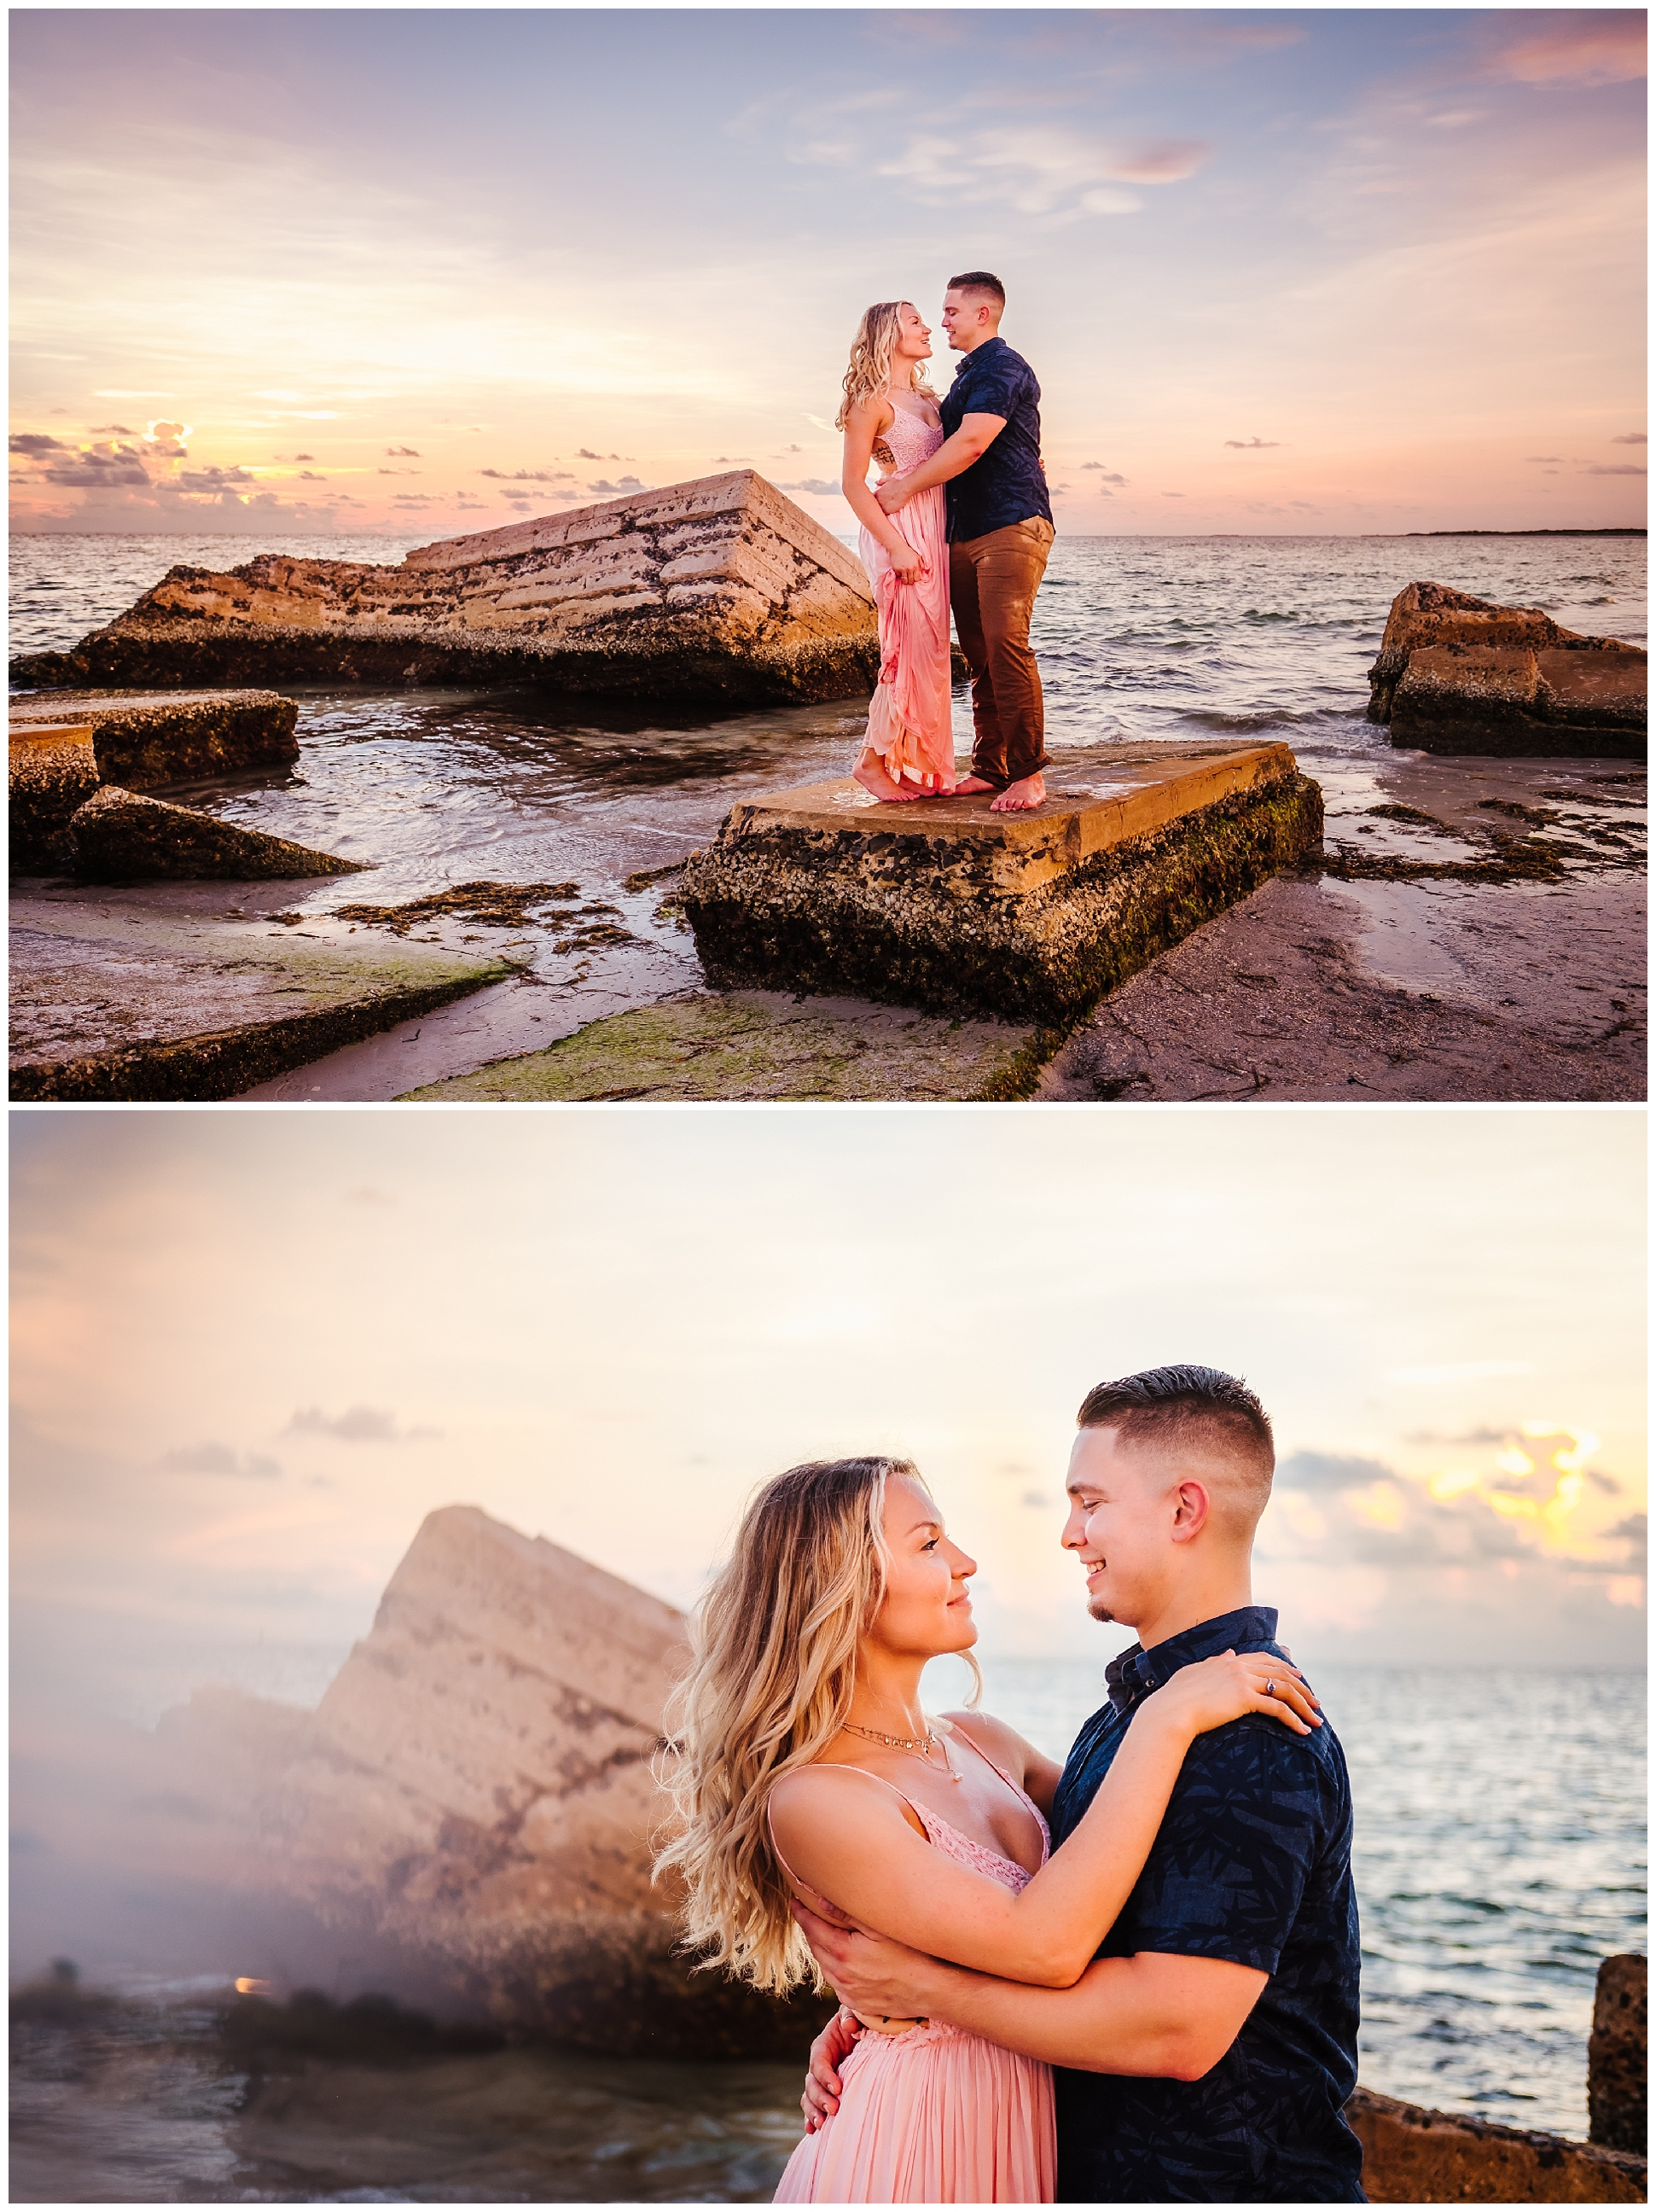 fort-desoto-engagement-photos-florida-beach-sunset_0248.jpg